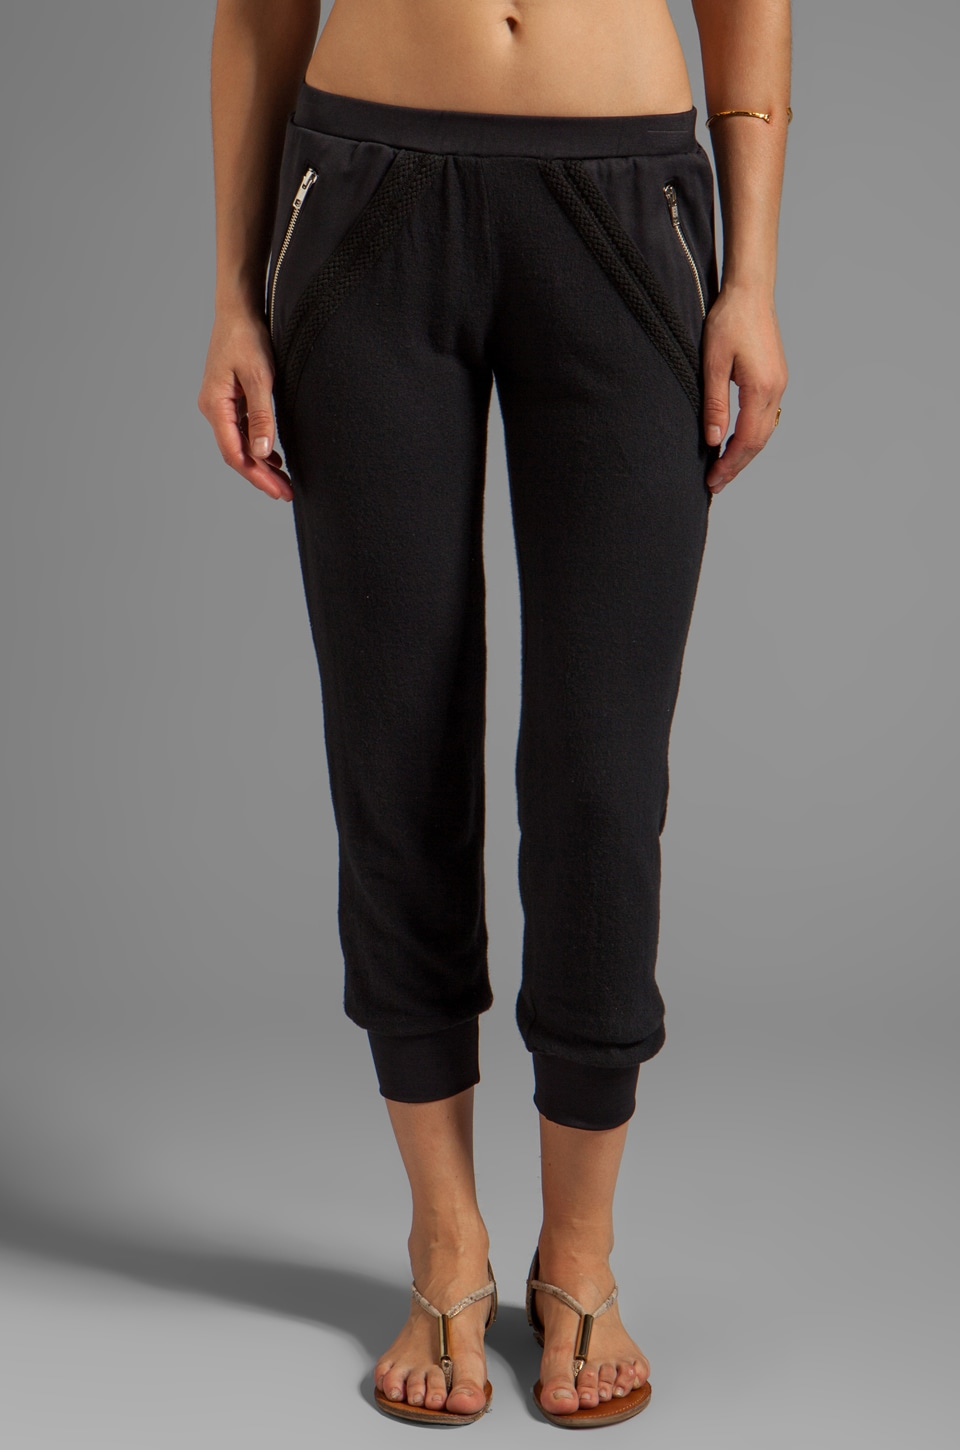 LNA Sadie Pant in Black